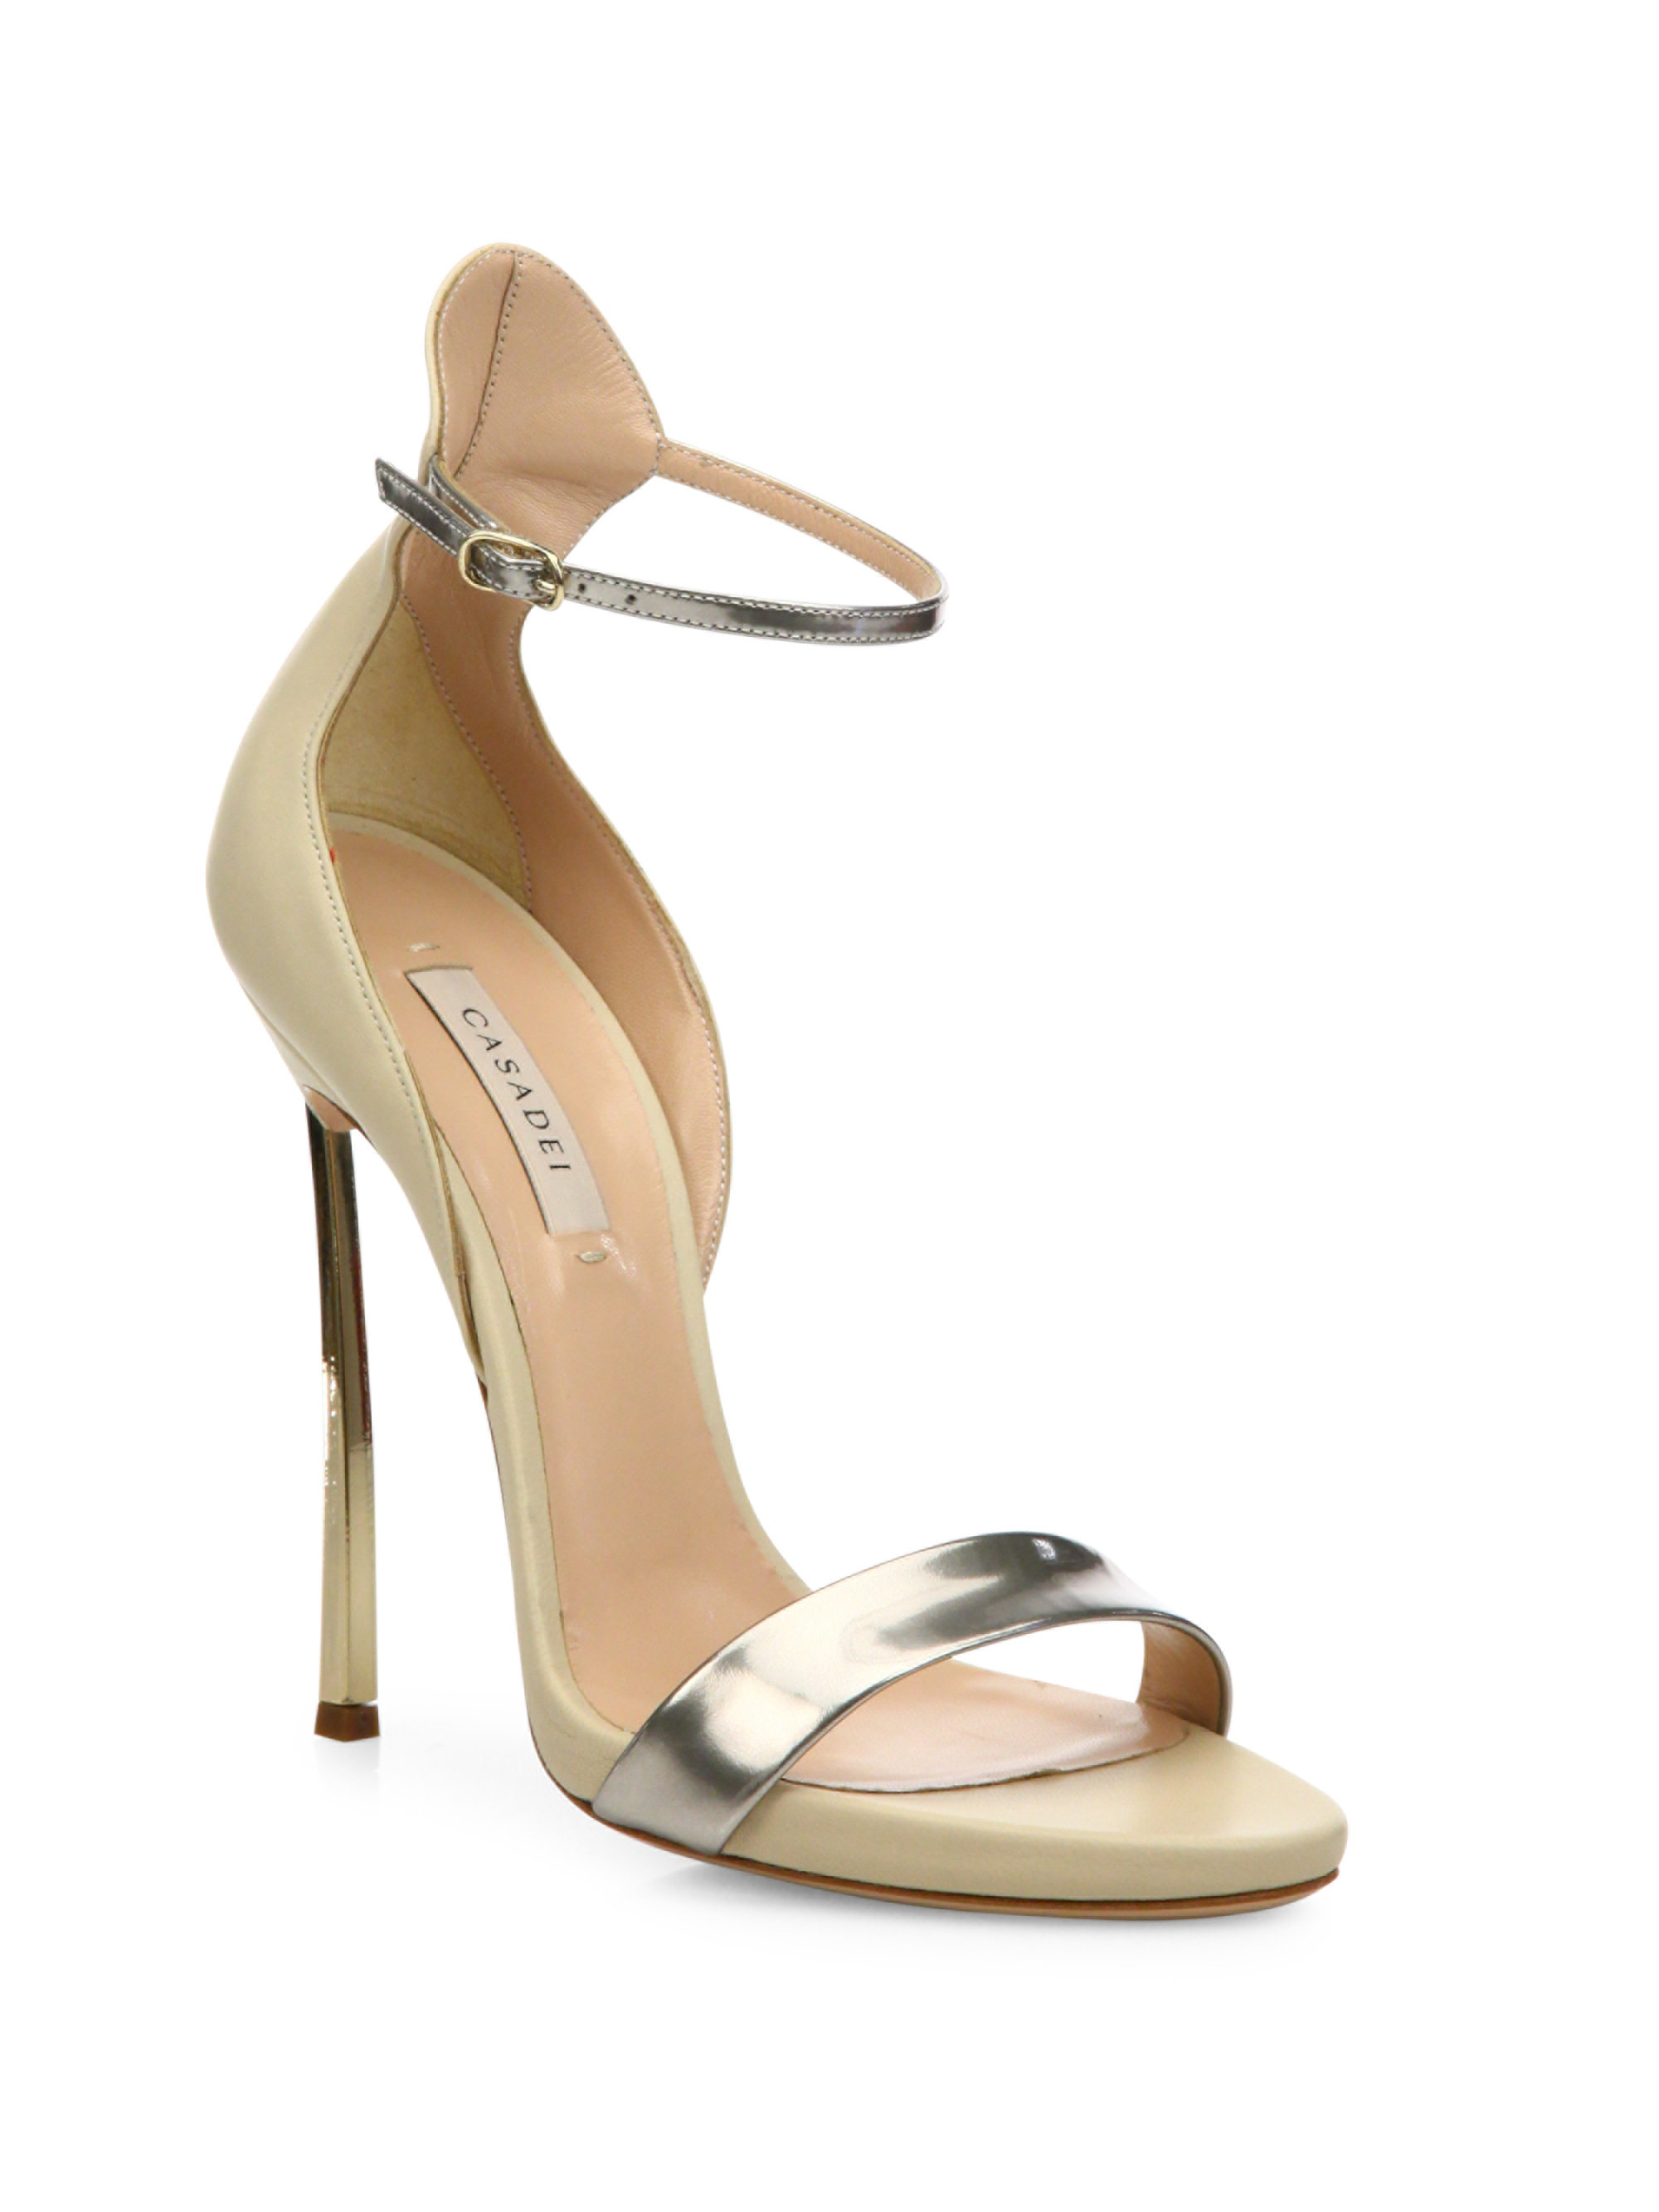 b80efa36e7 Casadei Blade Metallic Leather Sandals in Natural - Lyst